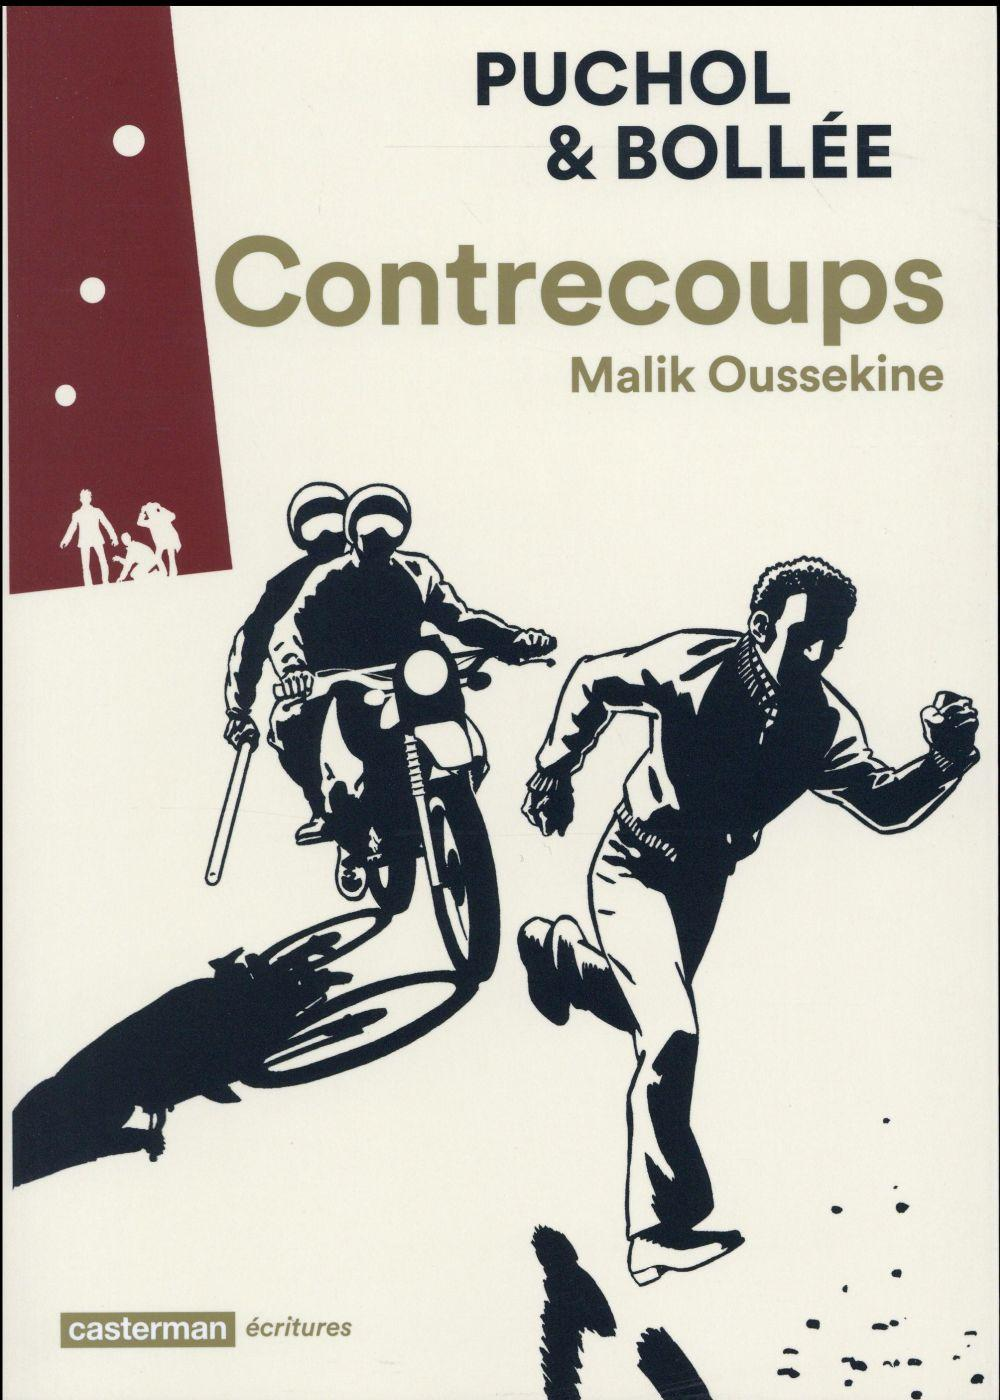 Contrecoups ; Malik Oussekine  - Jeanne Puchol  - Laurent-Frederic Bollee